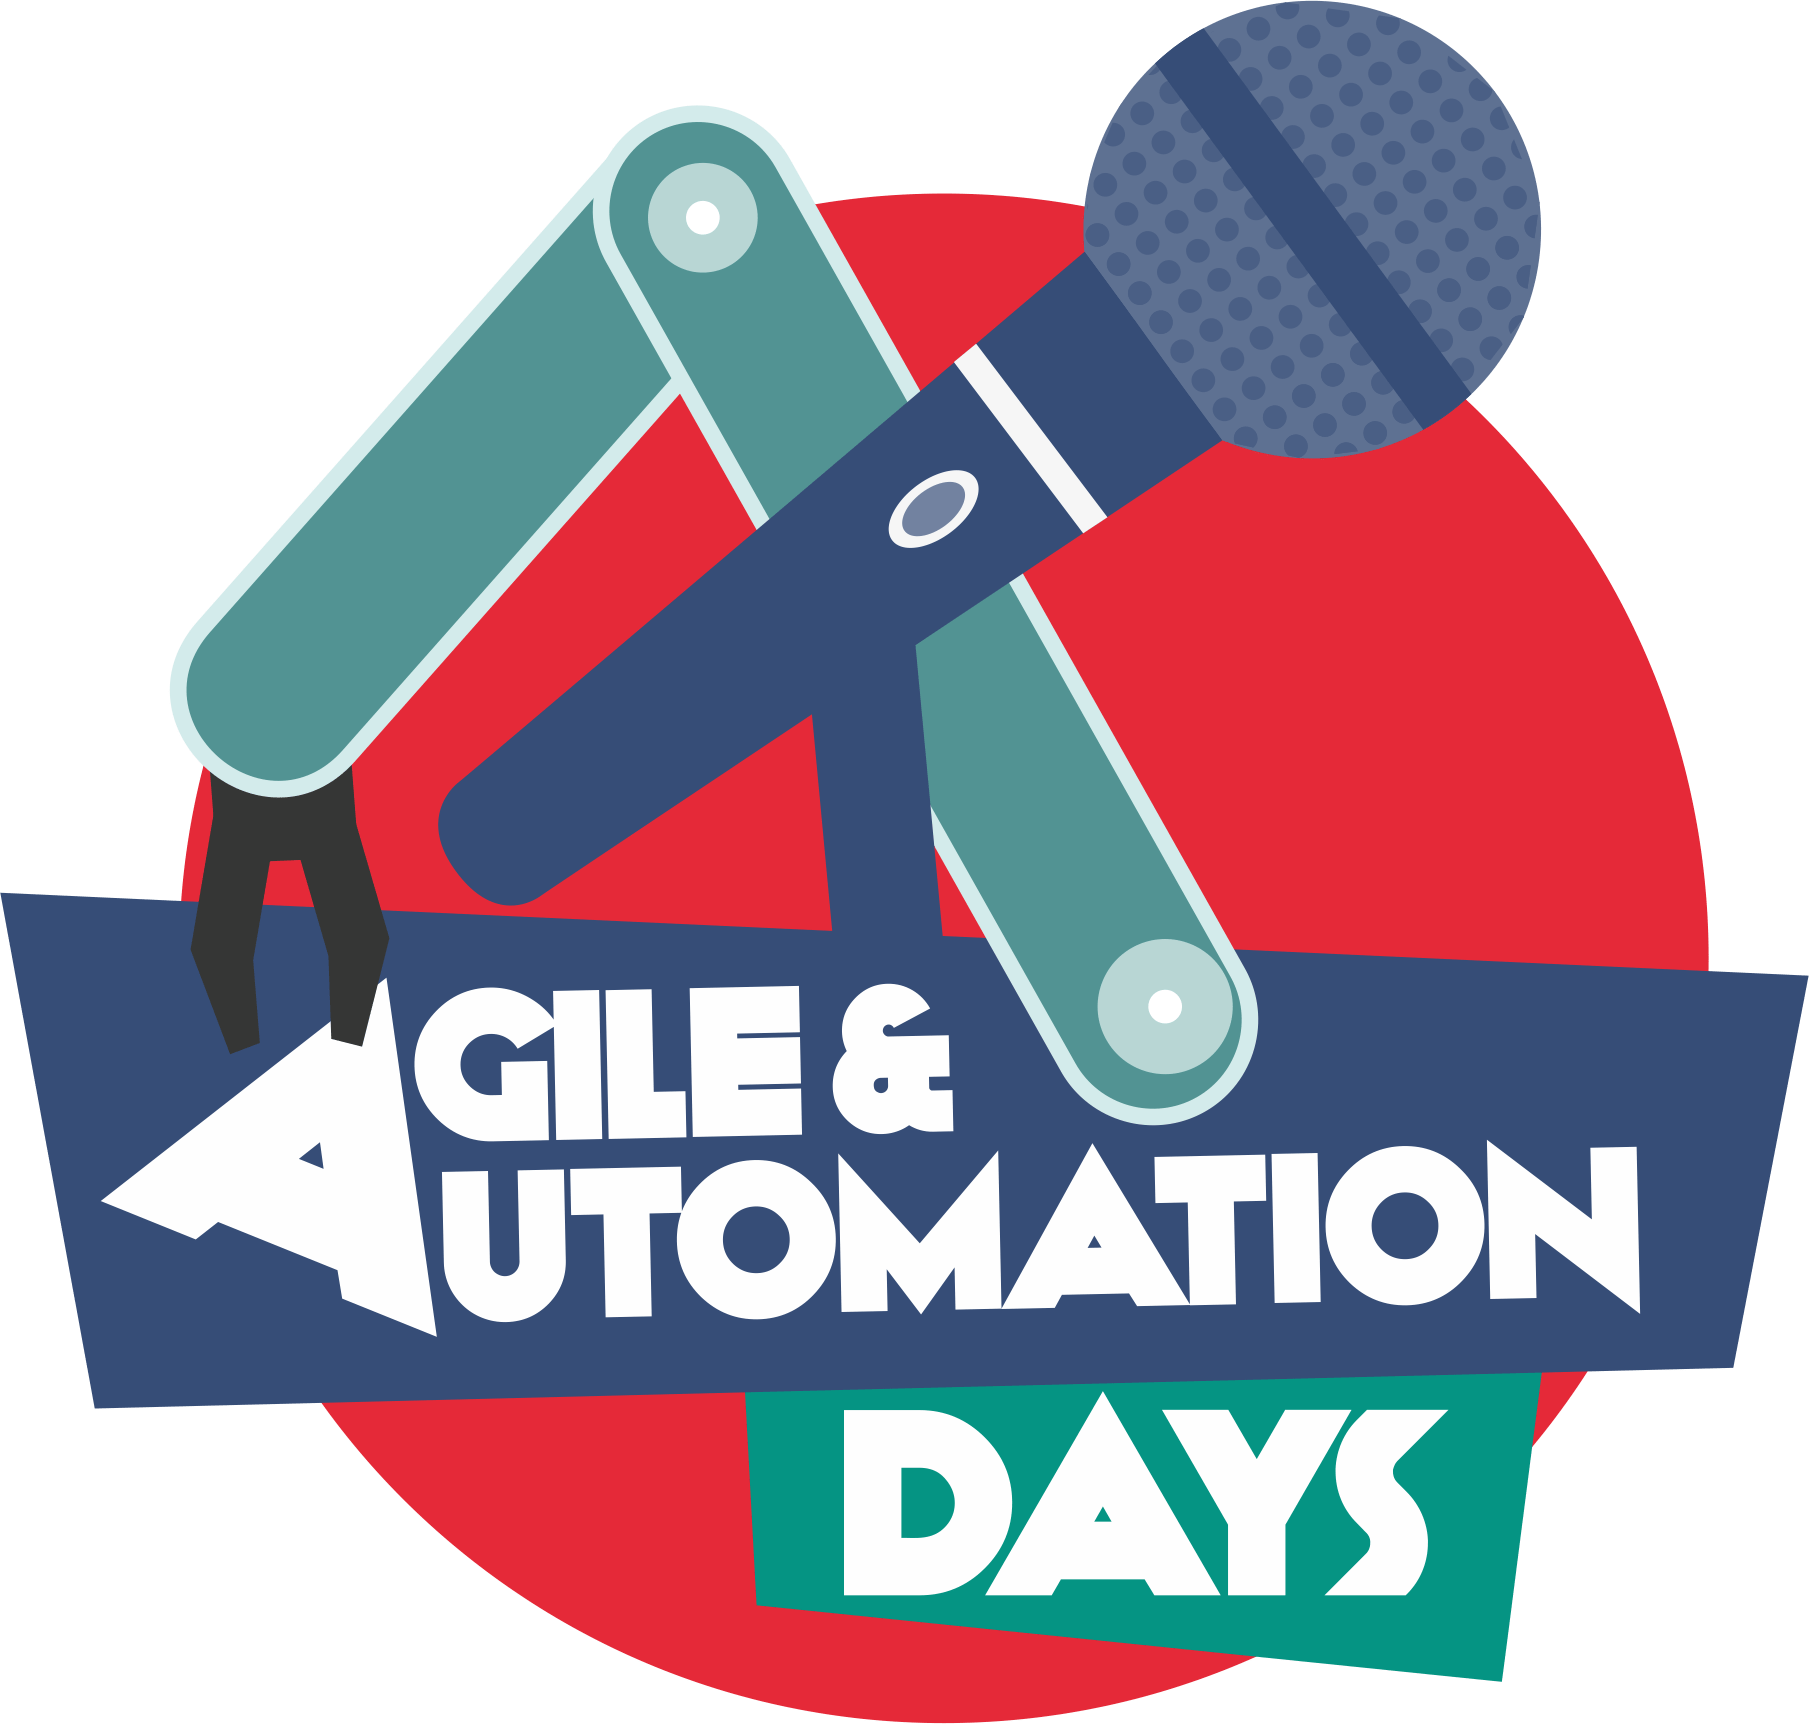 Agile and Automation Days 2017